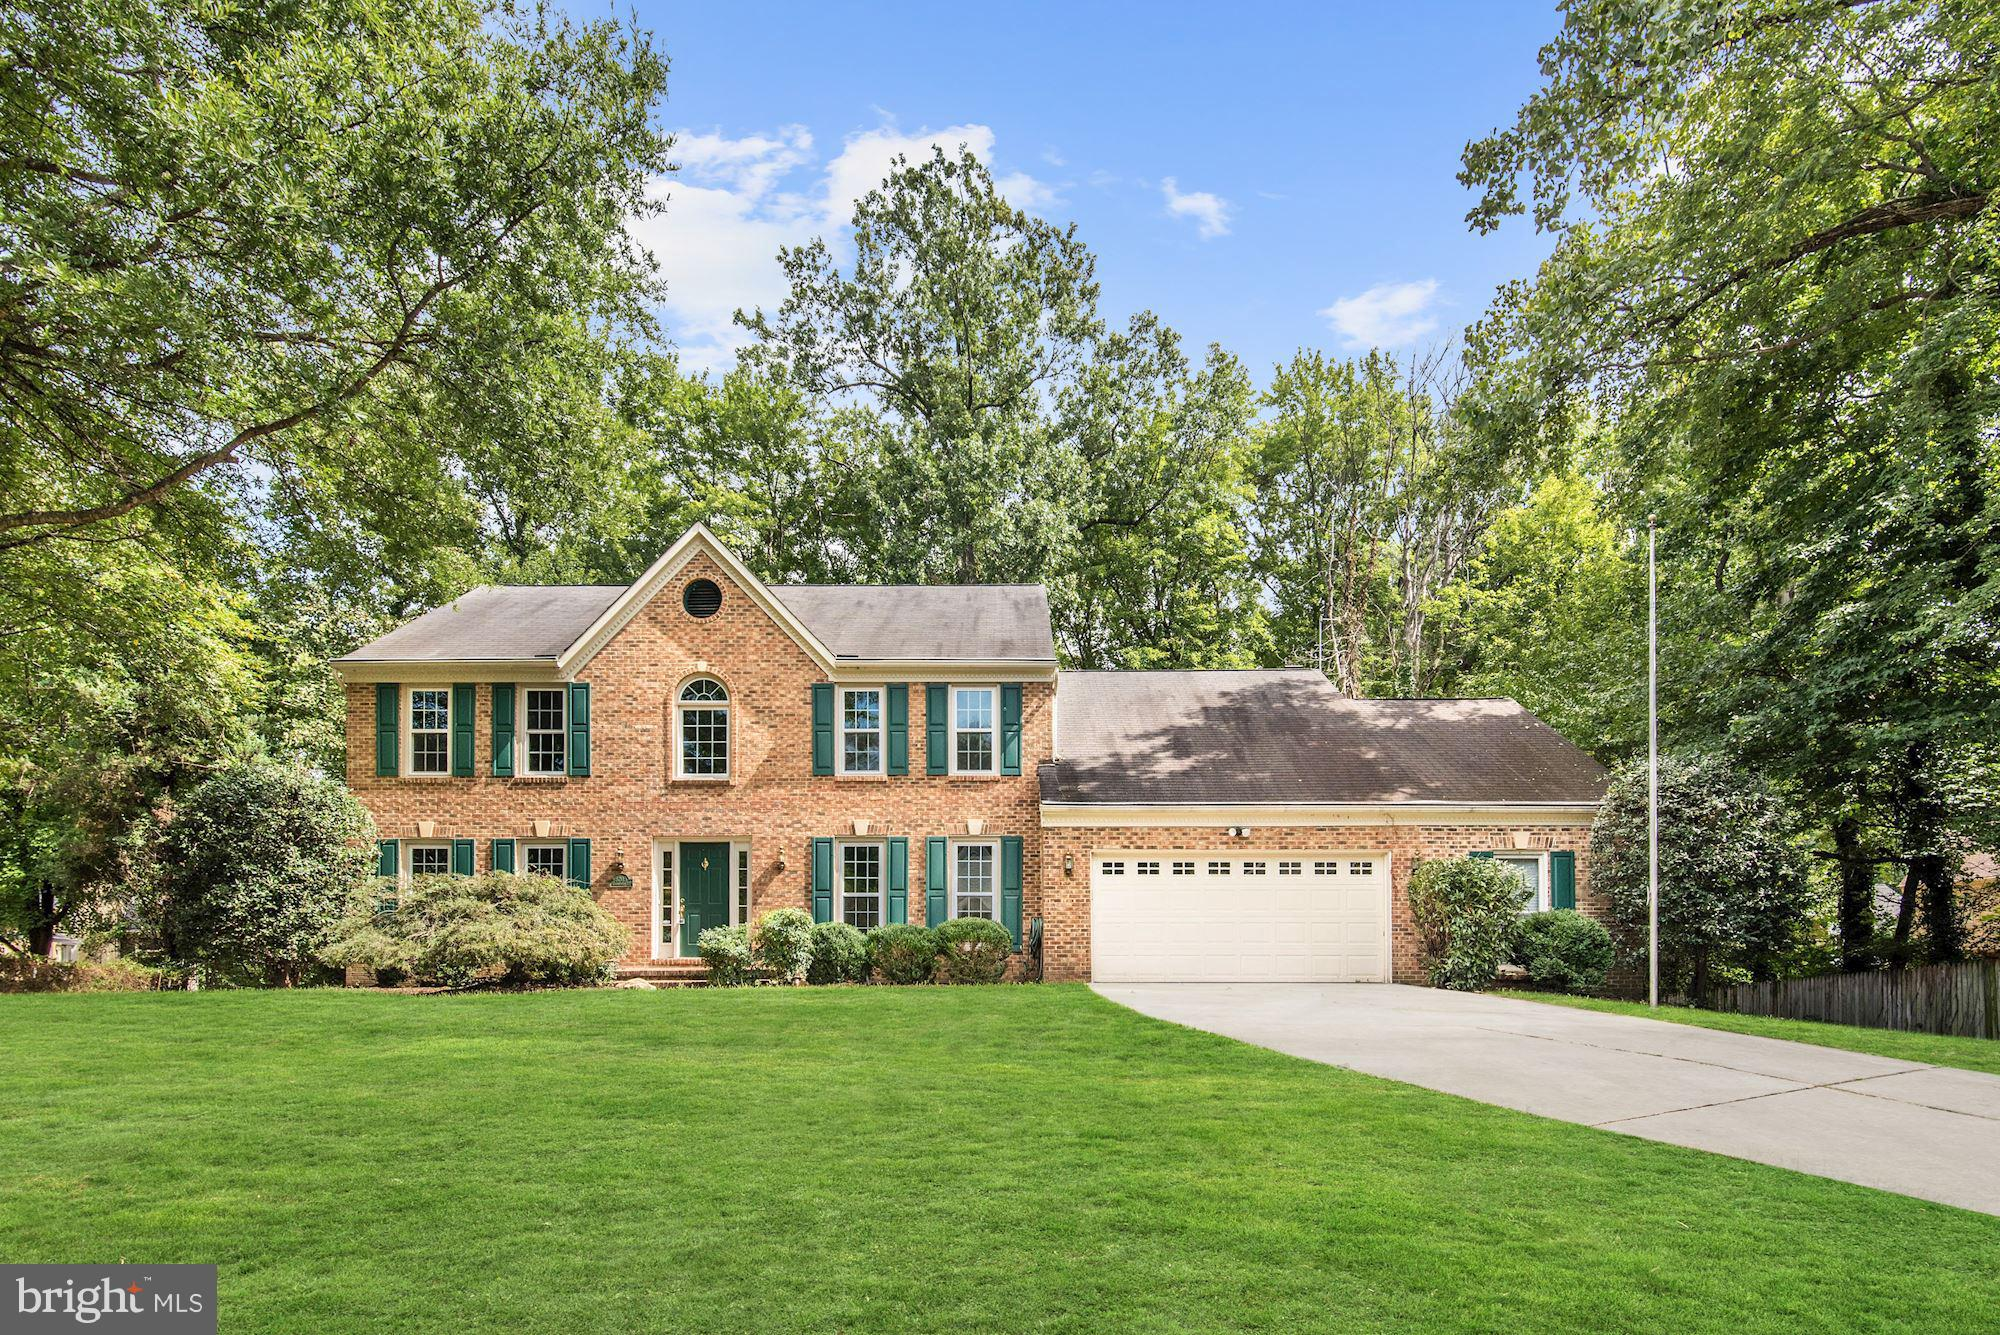 Located on a quiet cul-de-sac in Fairfax Co Alexandria, this well-designed home is built w/ thoughtful details and unique touches, including spacious rooms, bountiful windows/skylights throughout allowing for floods of natural light, gorgeous millwork, vaulted/cathedral ceilings, 2-story/+11ft. ceilings, ornate light fixtures, & large lot. A great opportunity.